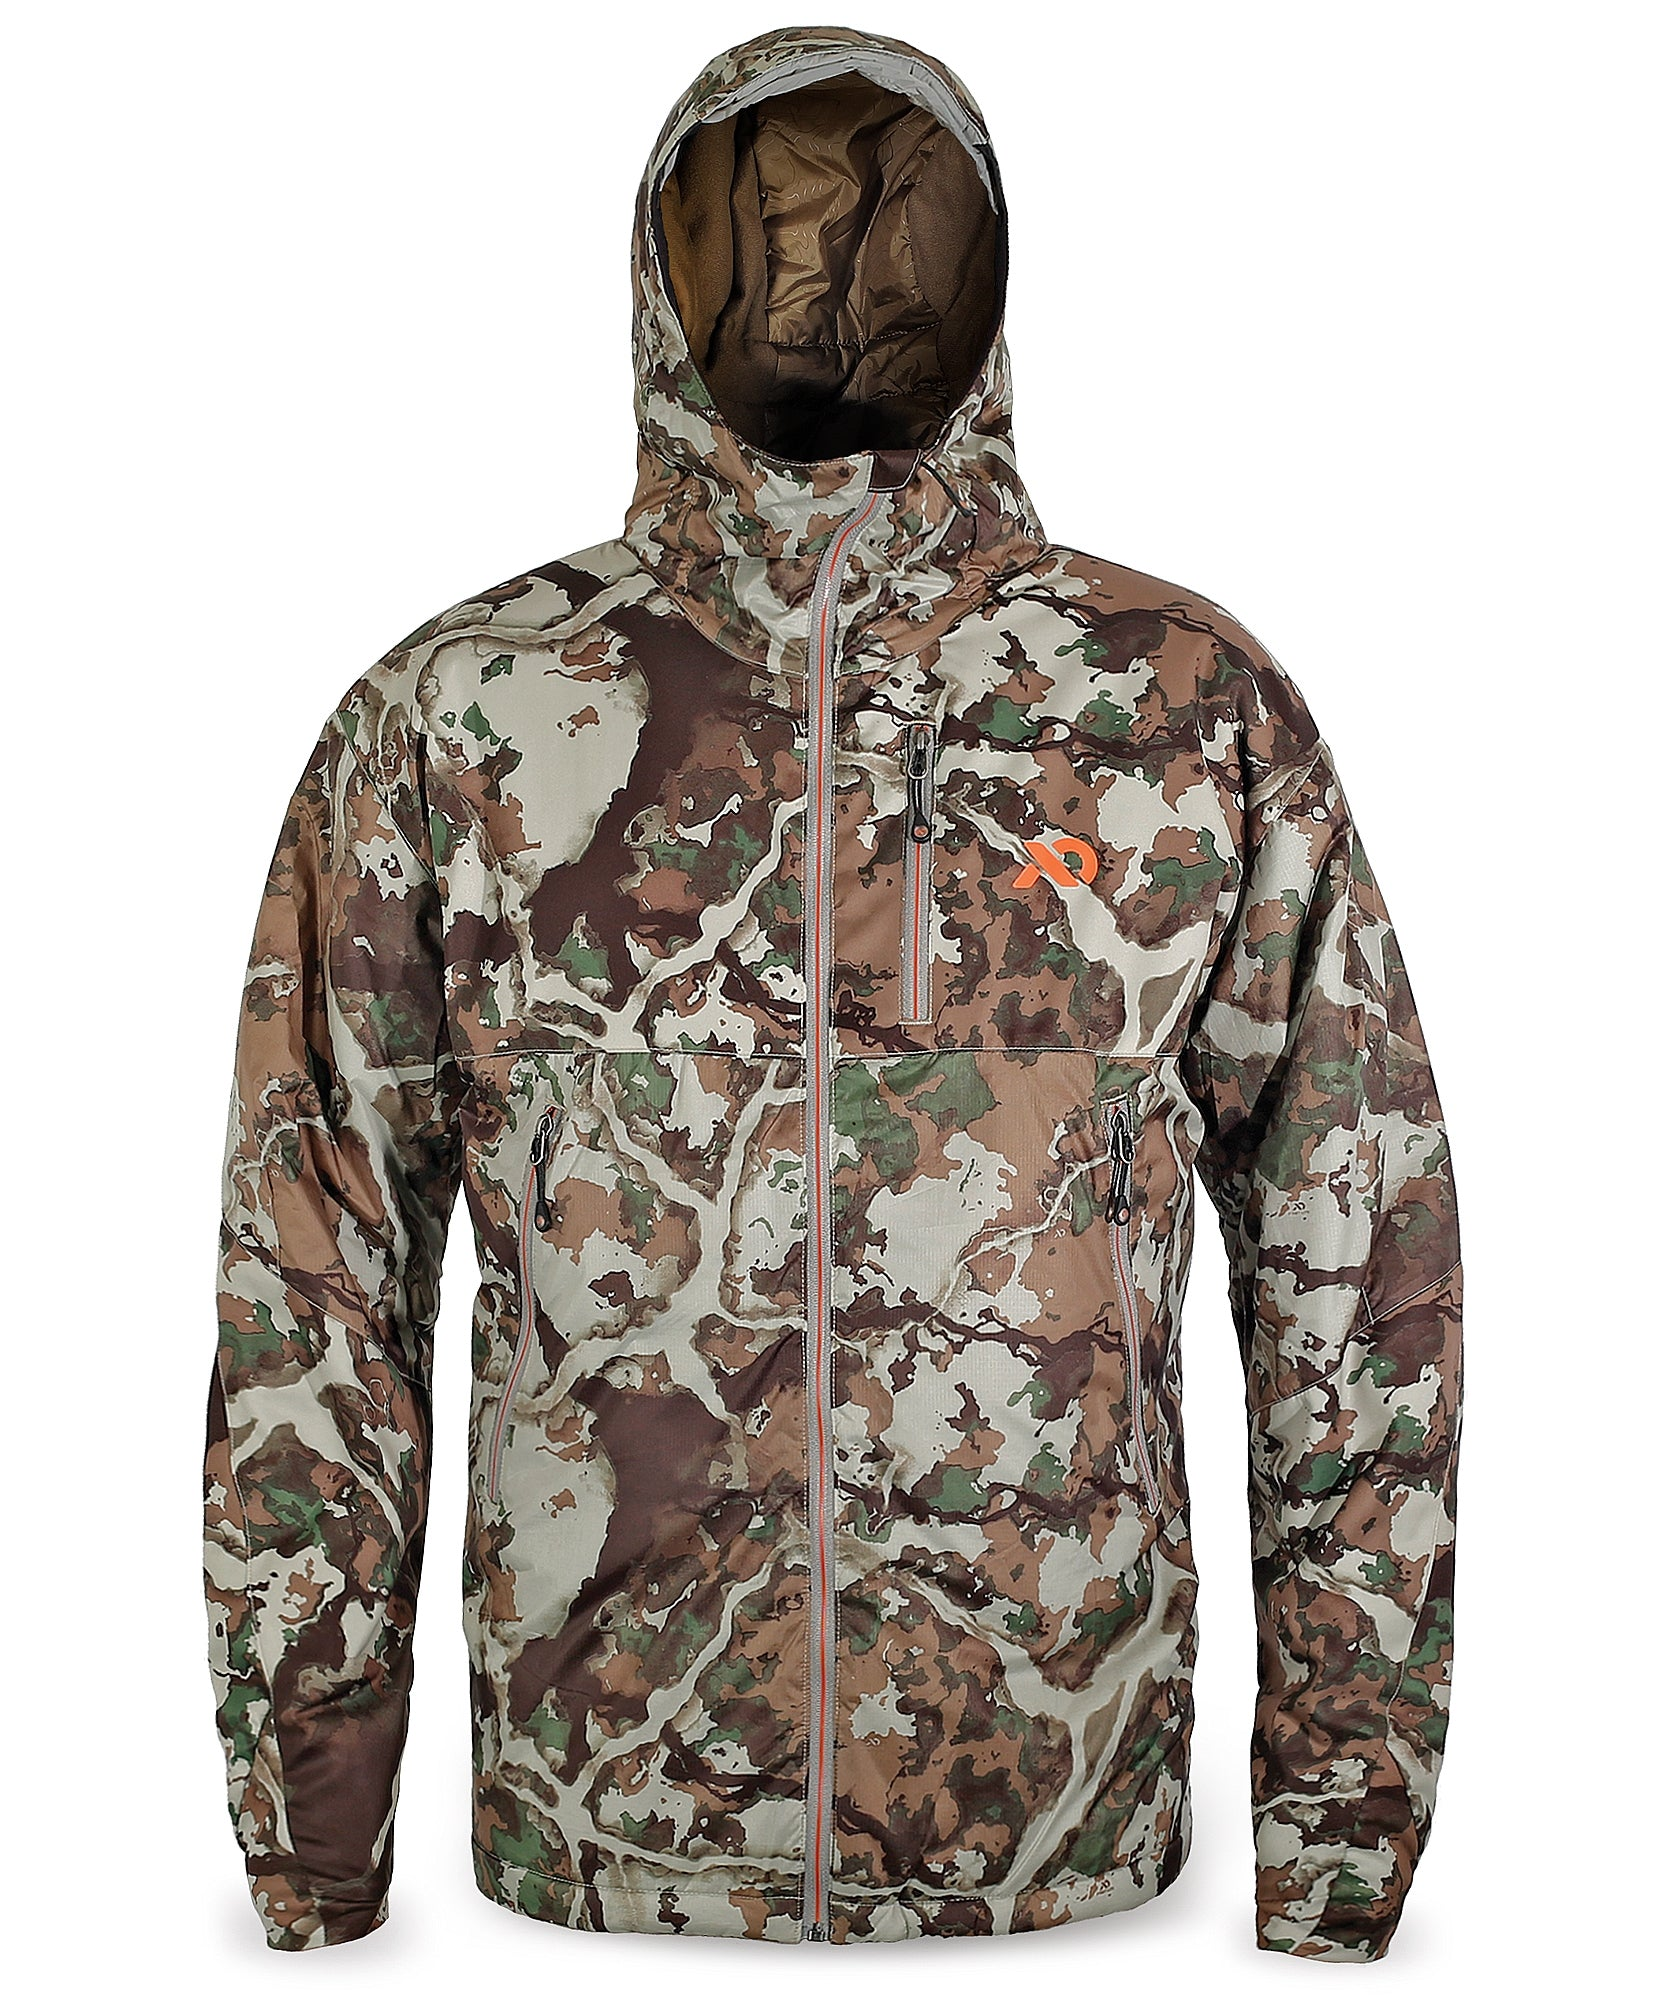 Uncompahgre Puffy Insulated Jacket